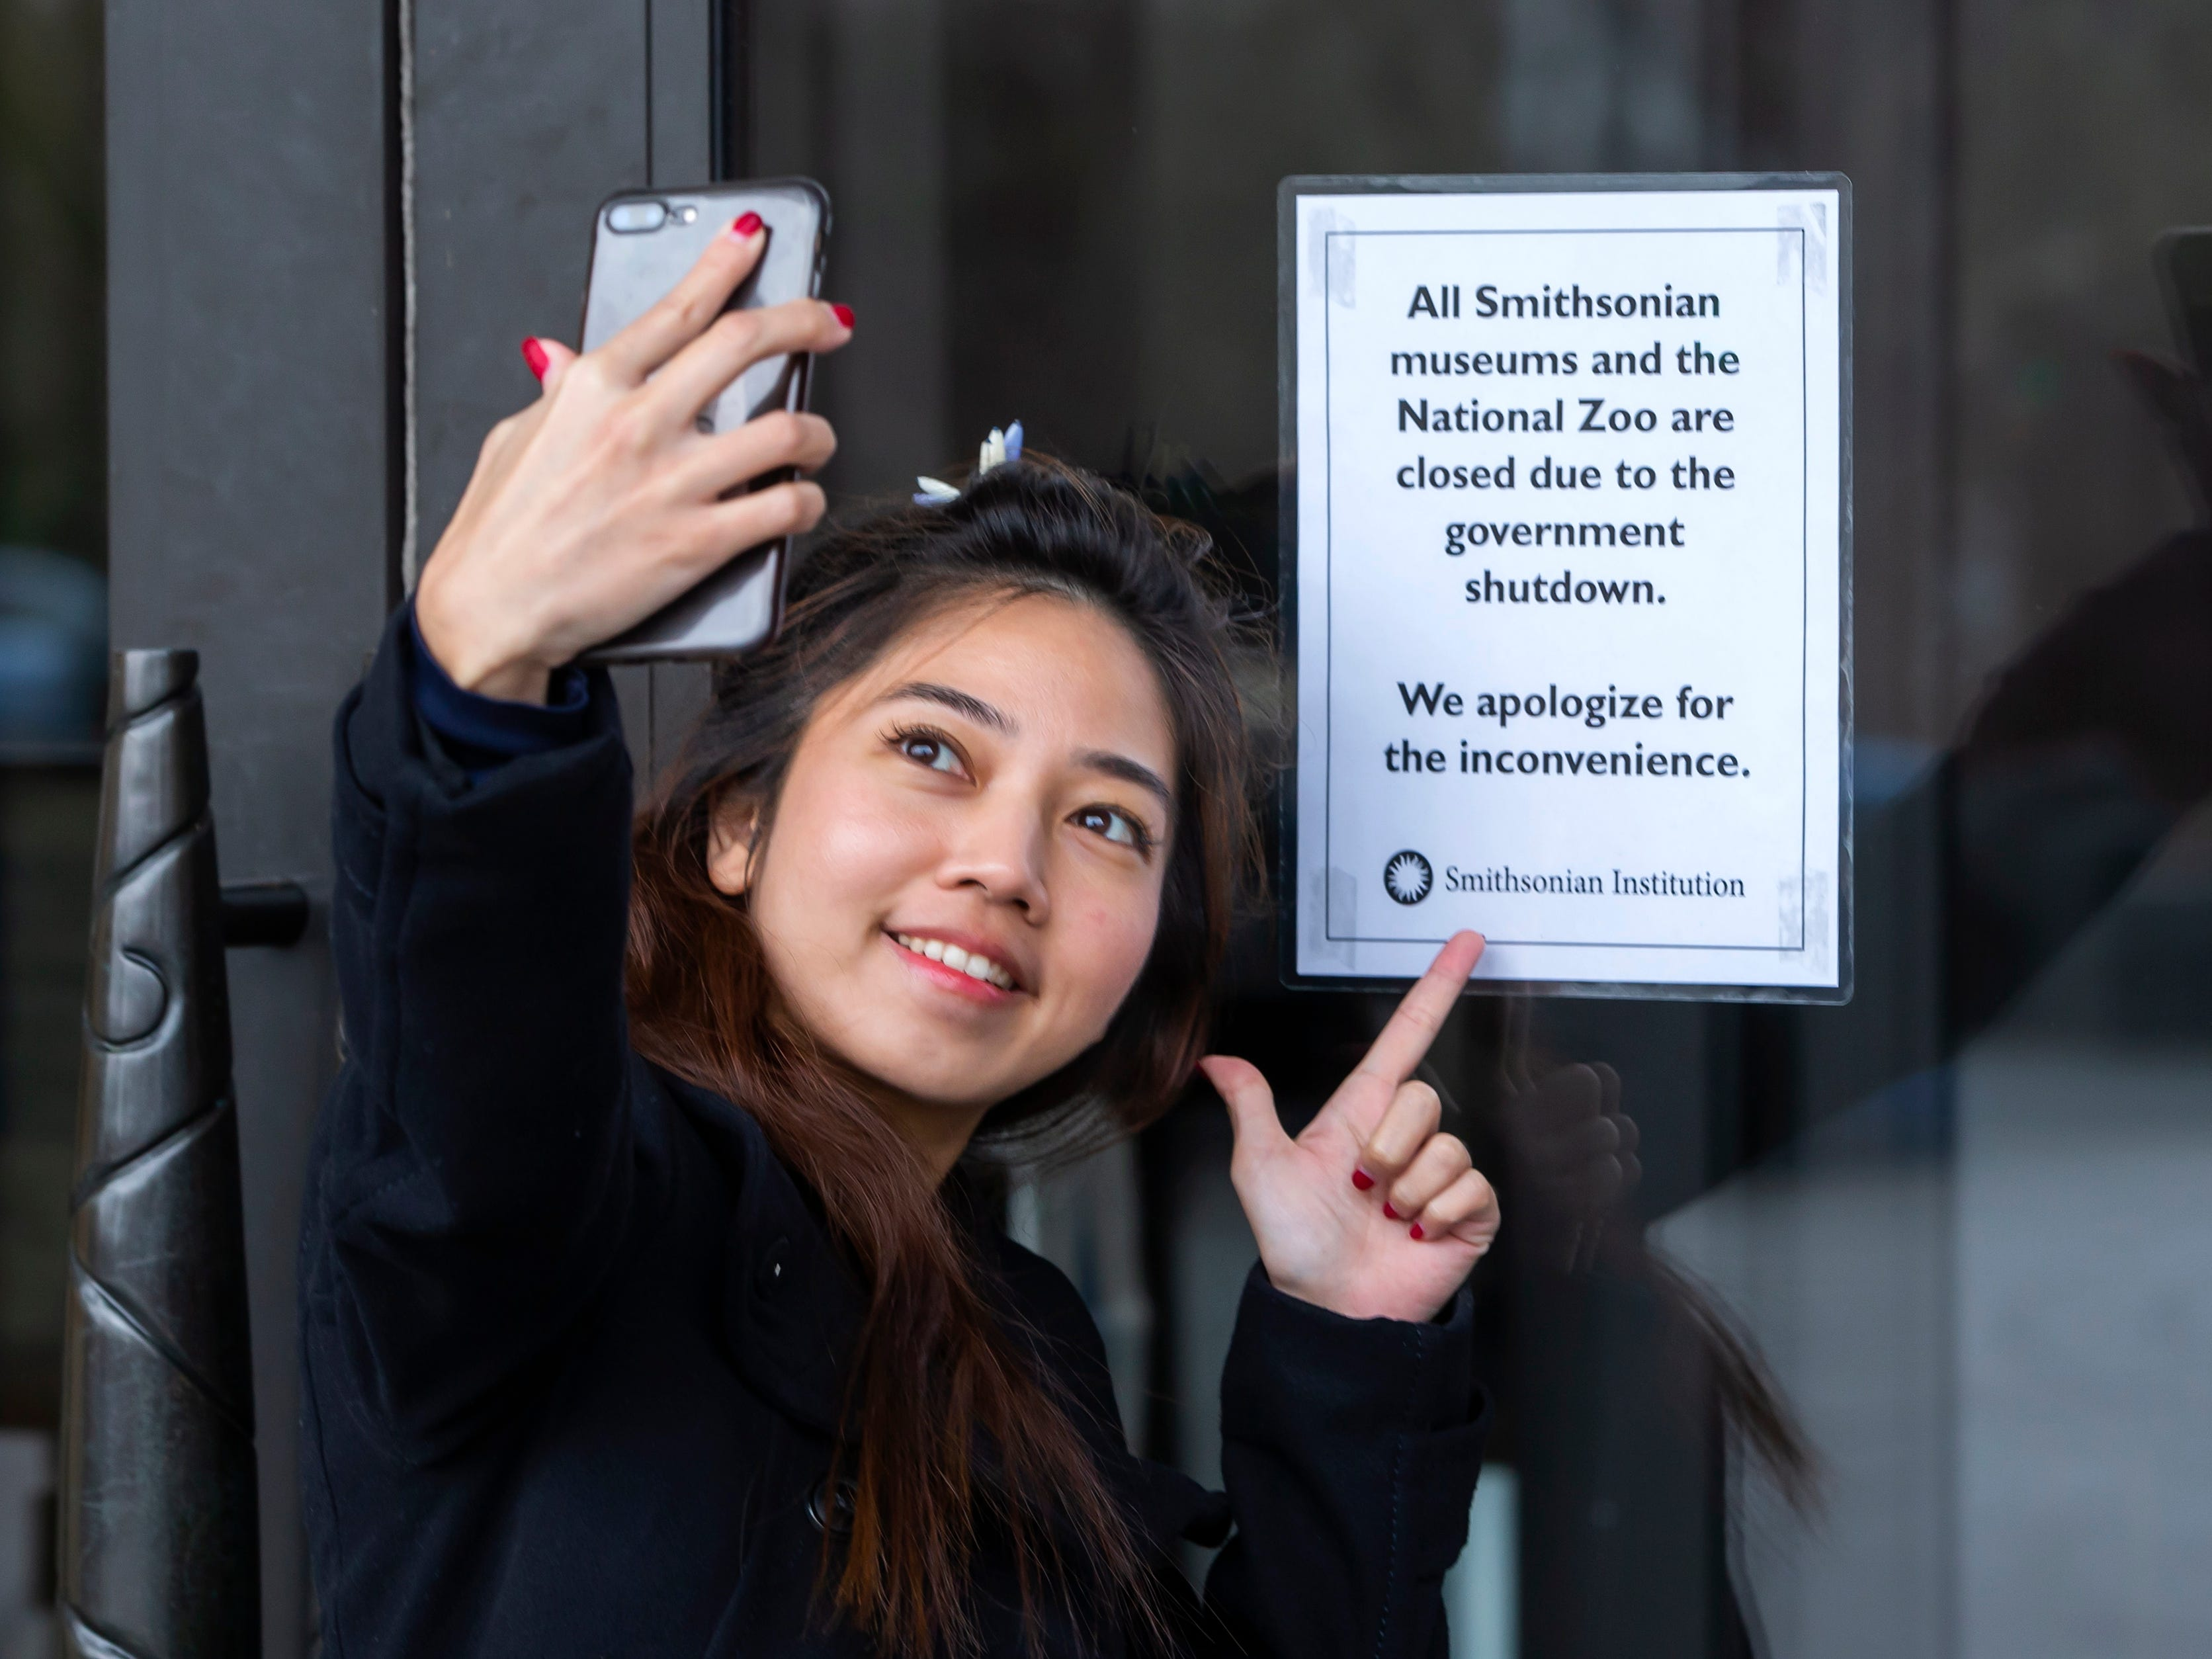 Kunyanatt Chalothorn from Thailand takes a selfie with a closure sign at the entrance to the Smithsonian American Indian Museum in Washington, DC on Jan. 2, 2019.